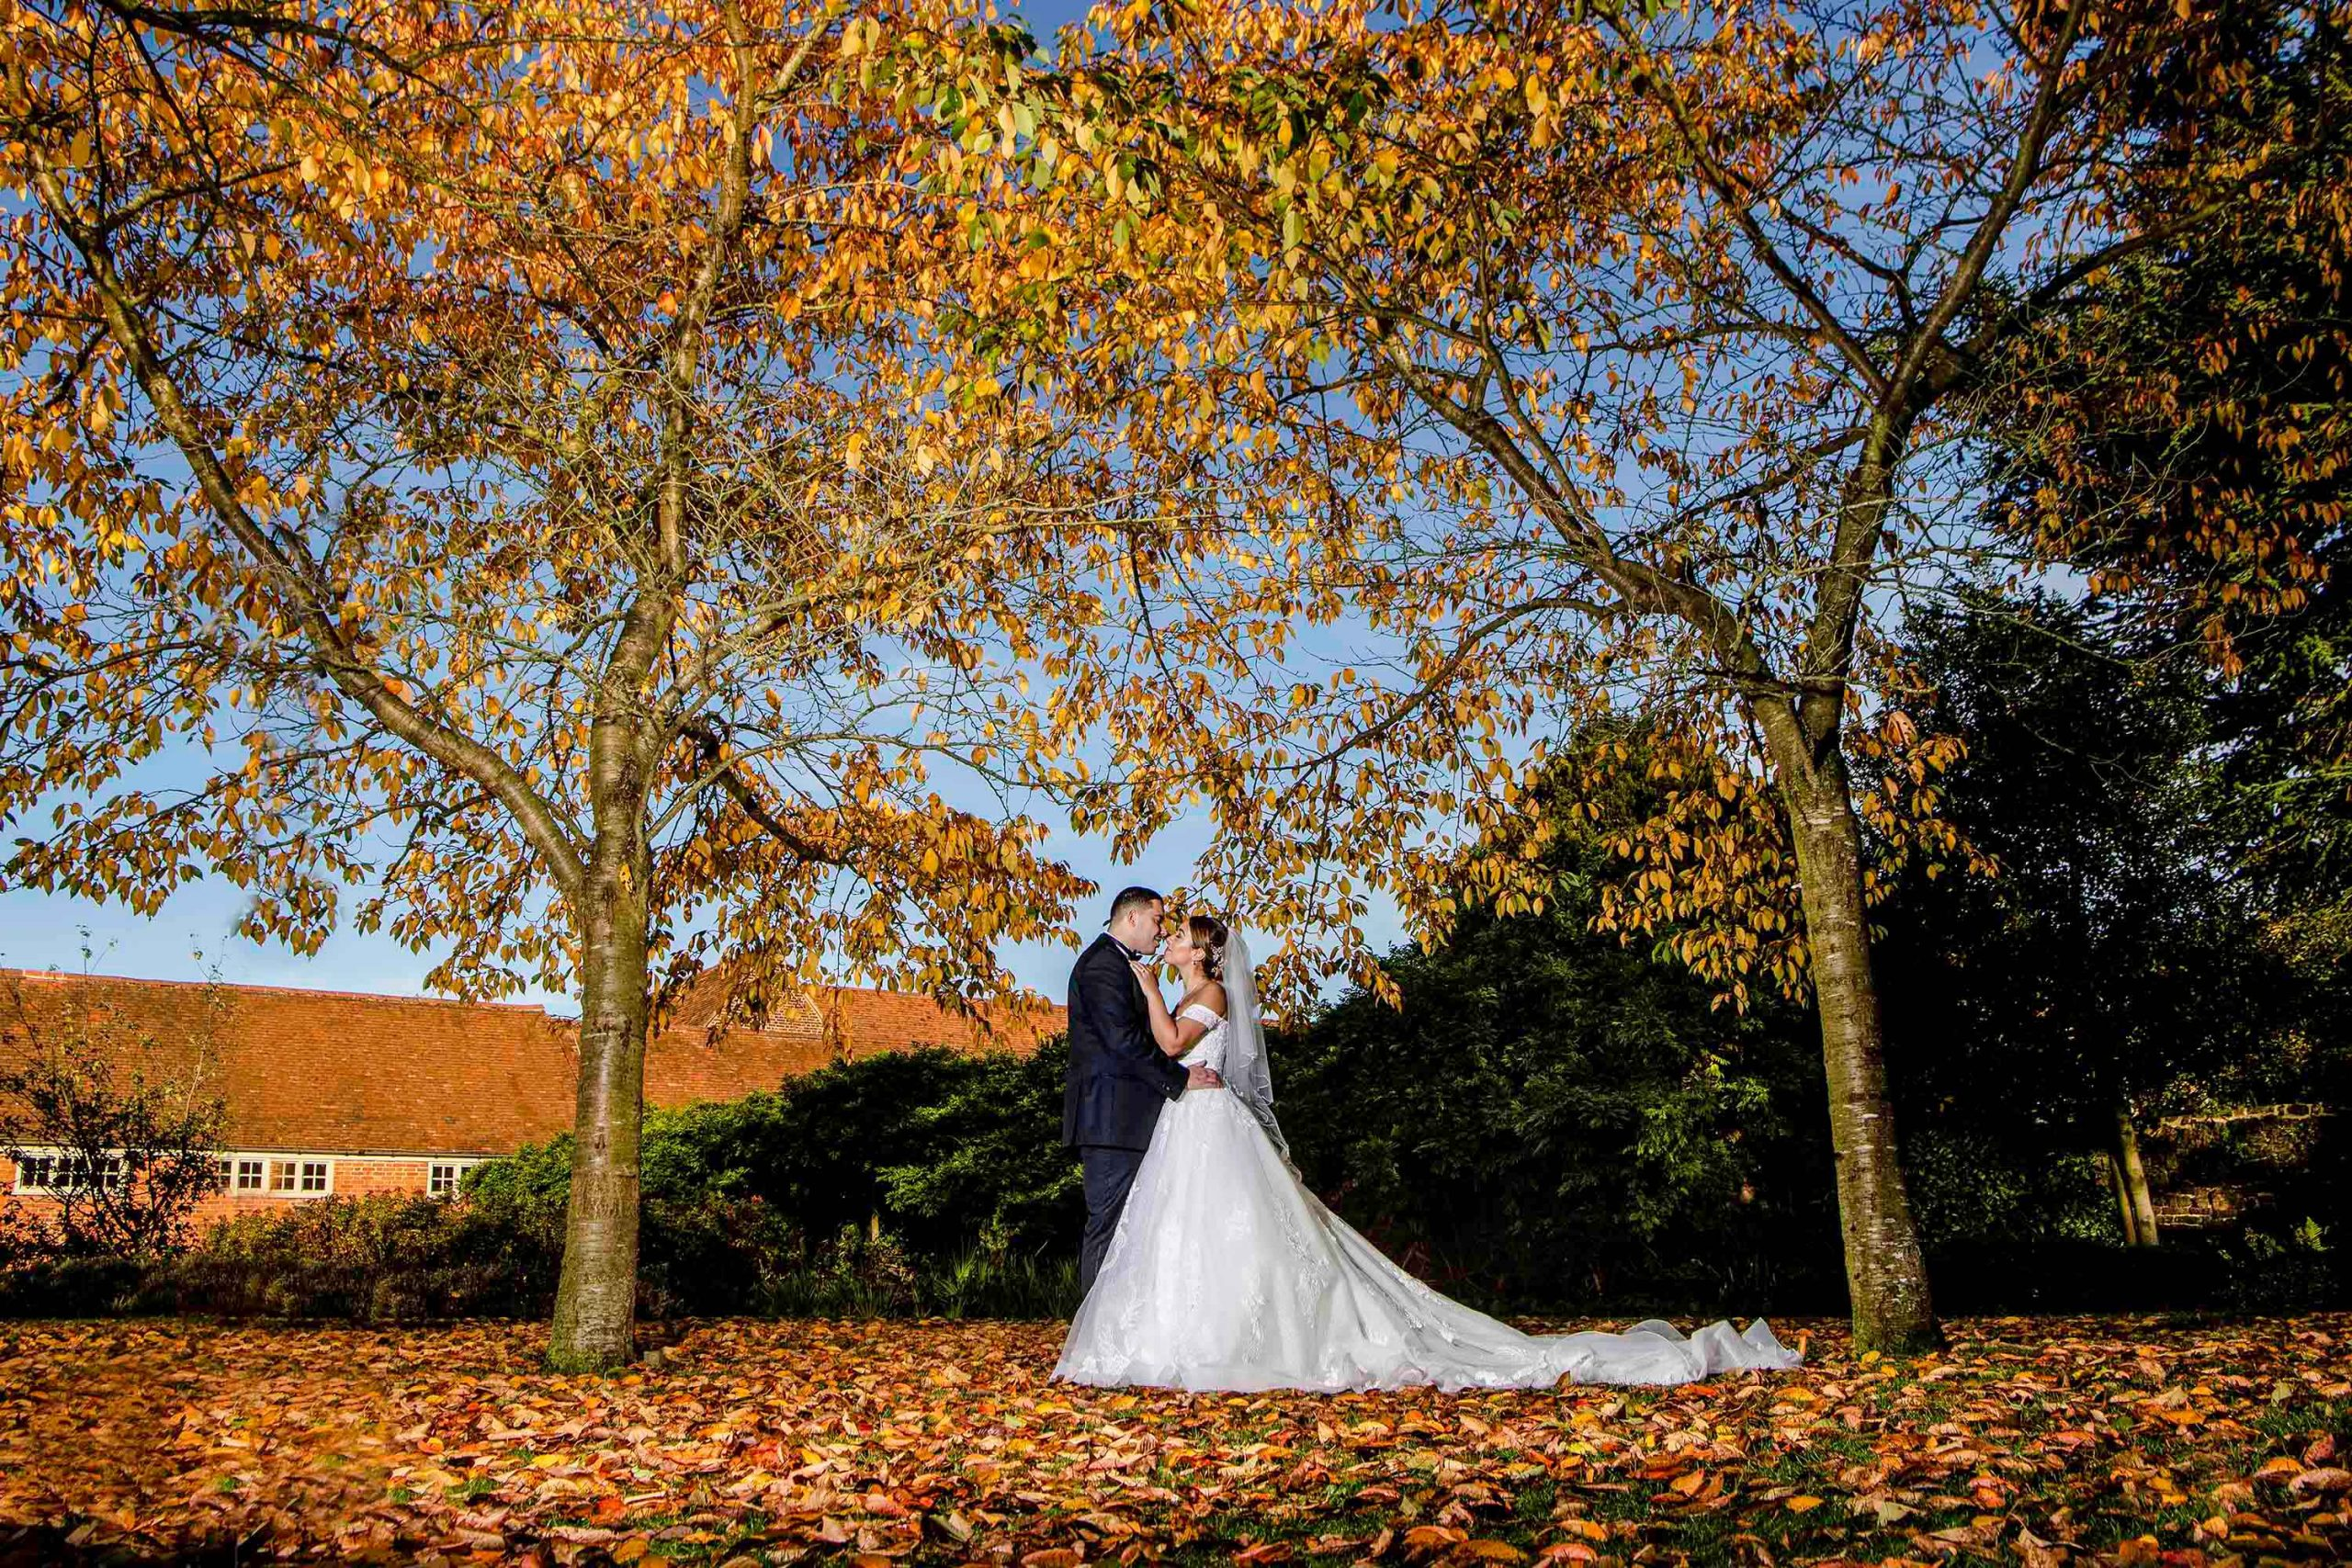 Wedding photography at Forty hall